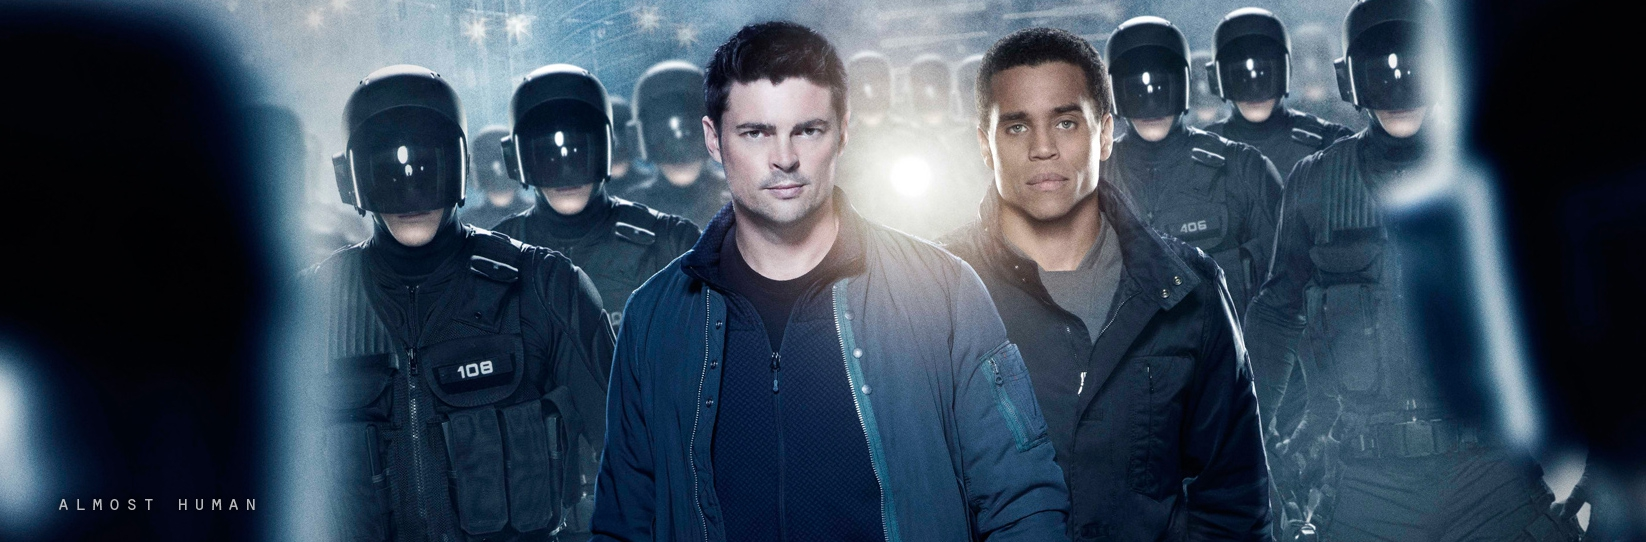 AlmostHumanBanner